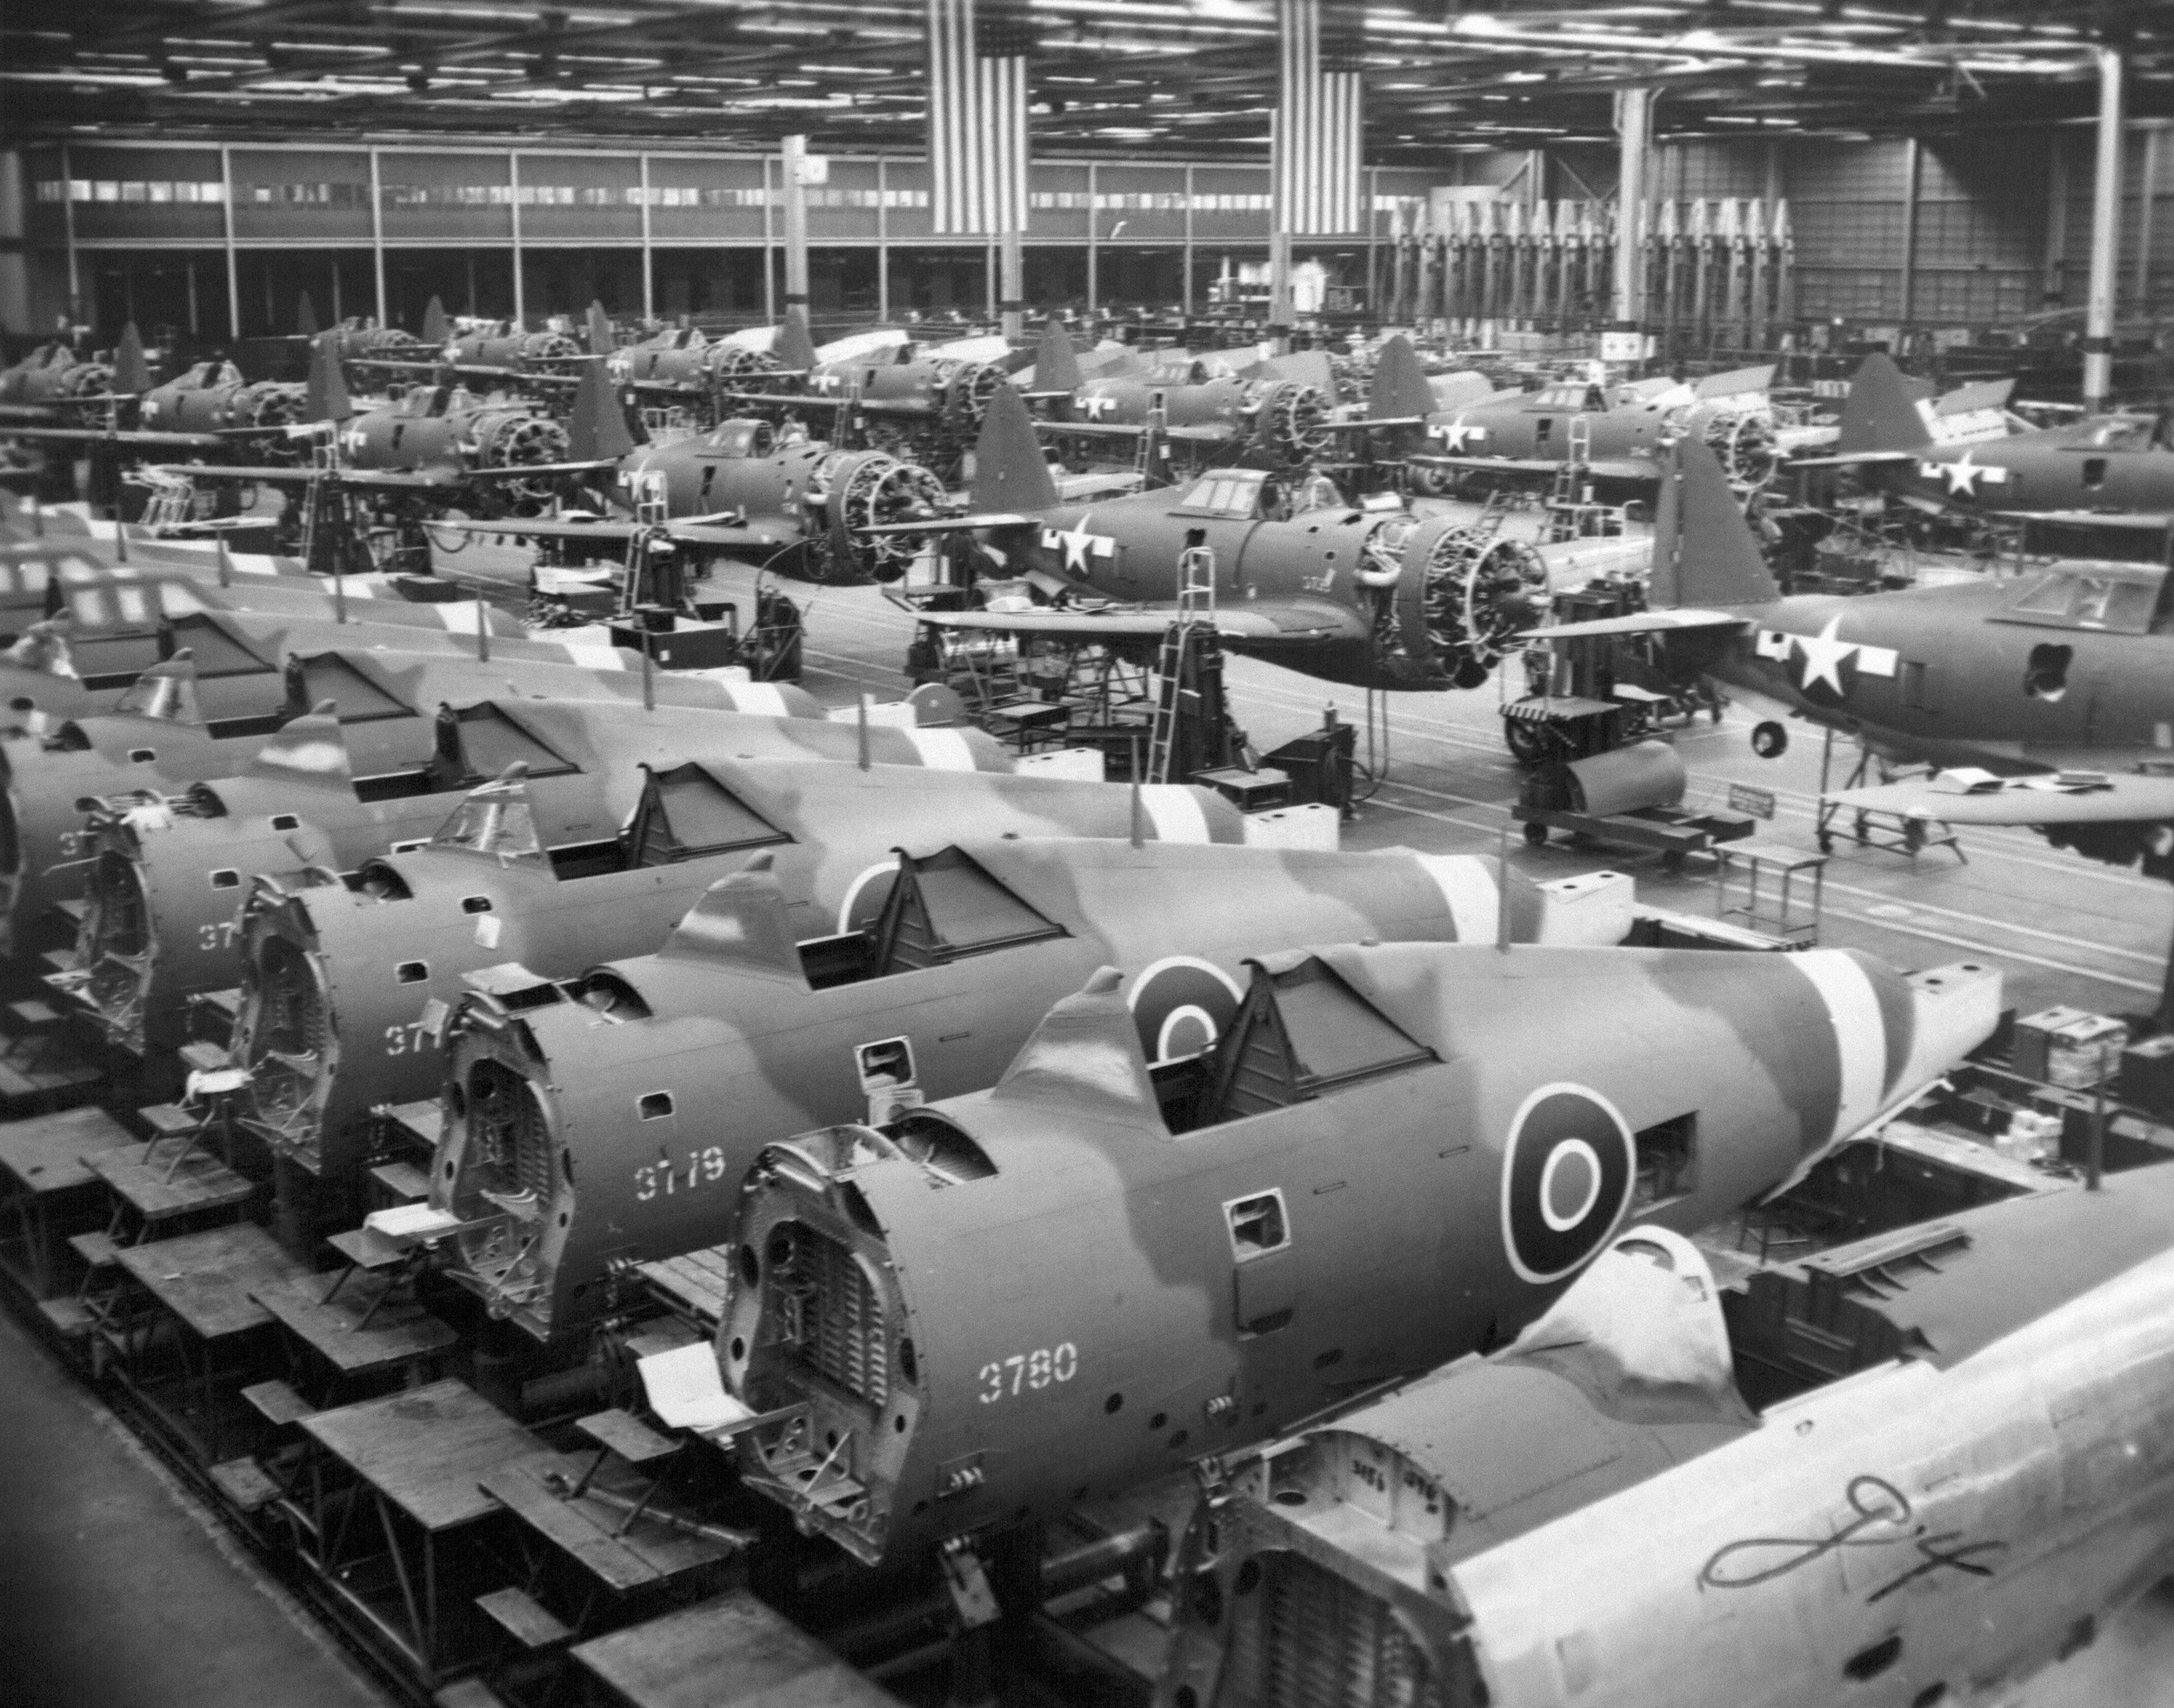 Vast P47 war bird production facilities during WWII  ......